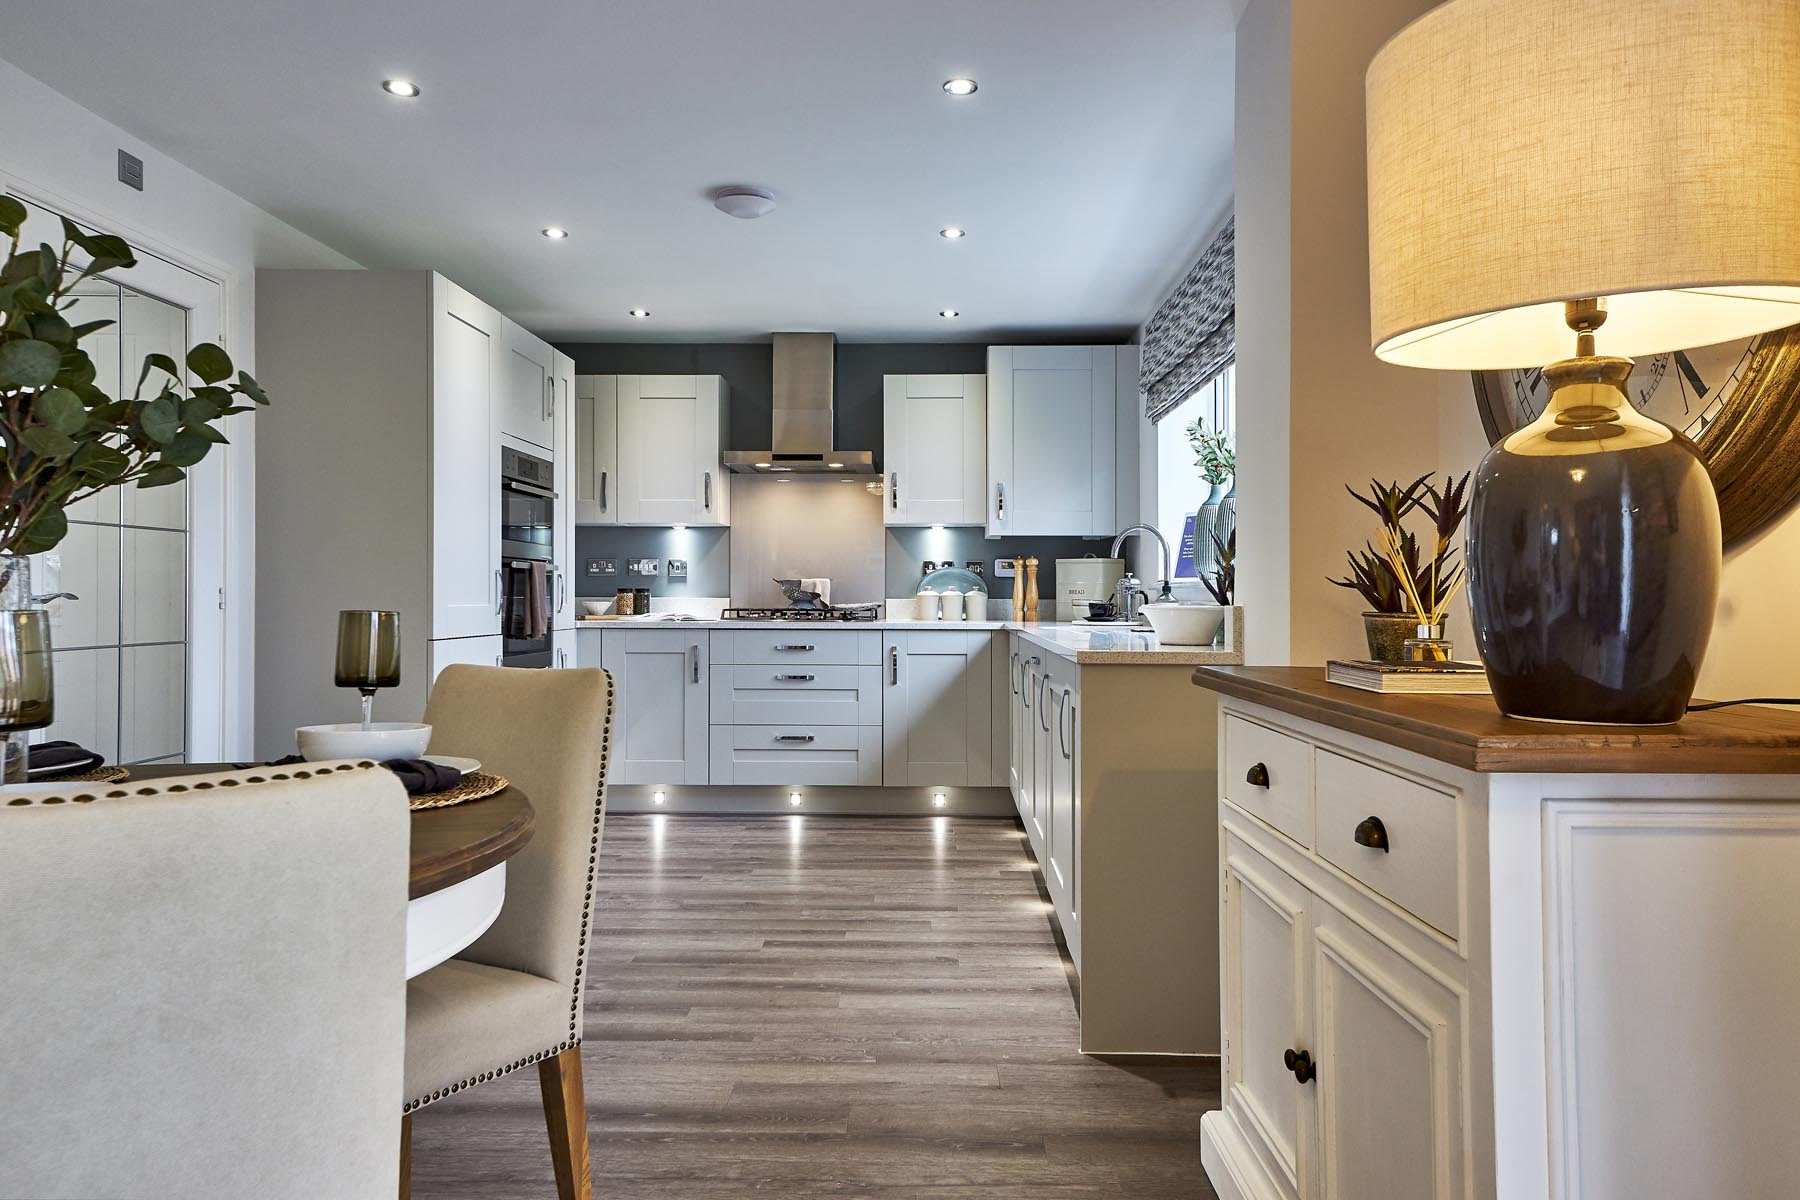 Woodland Edge - Shelford - Kitchen Diner1